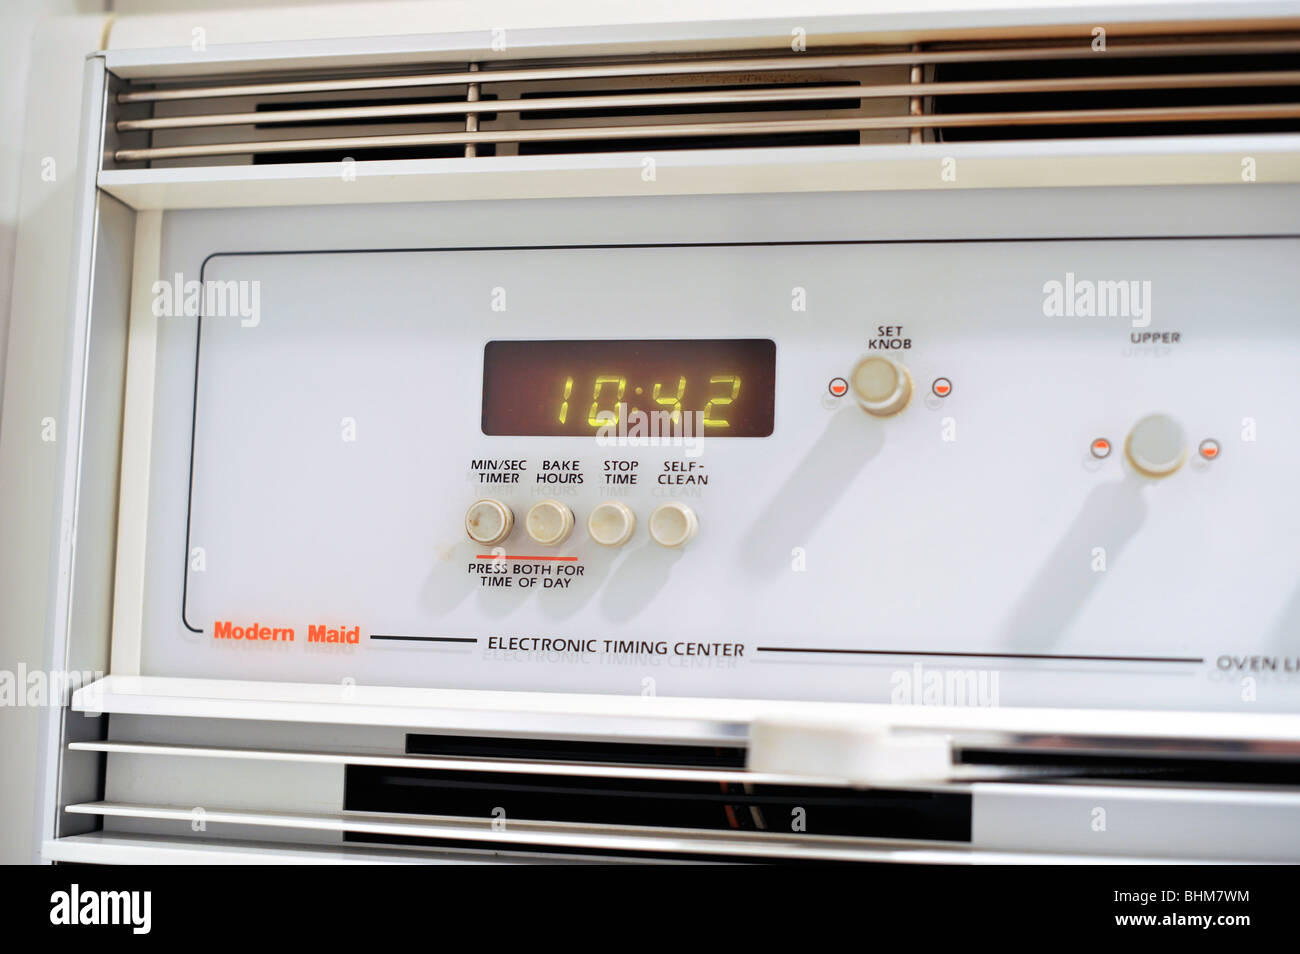 Wall Oven Control Panel with Timer Clock - Stock Image